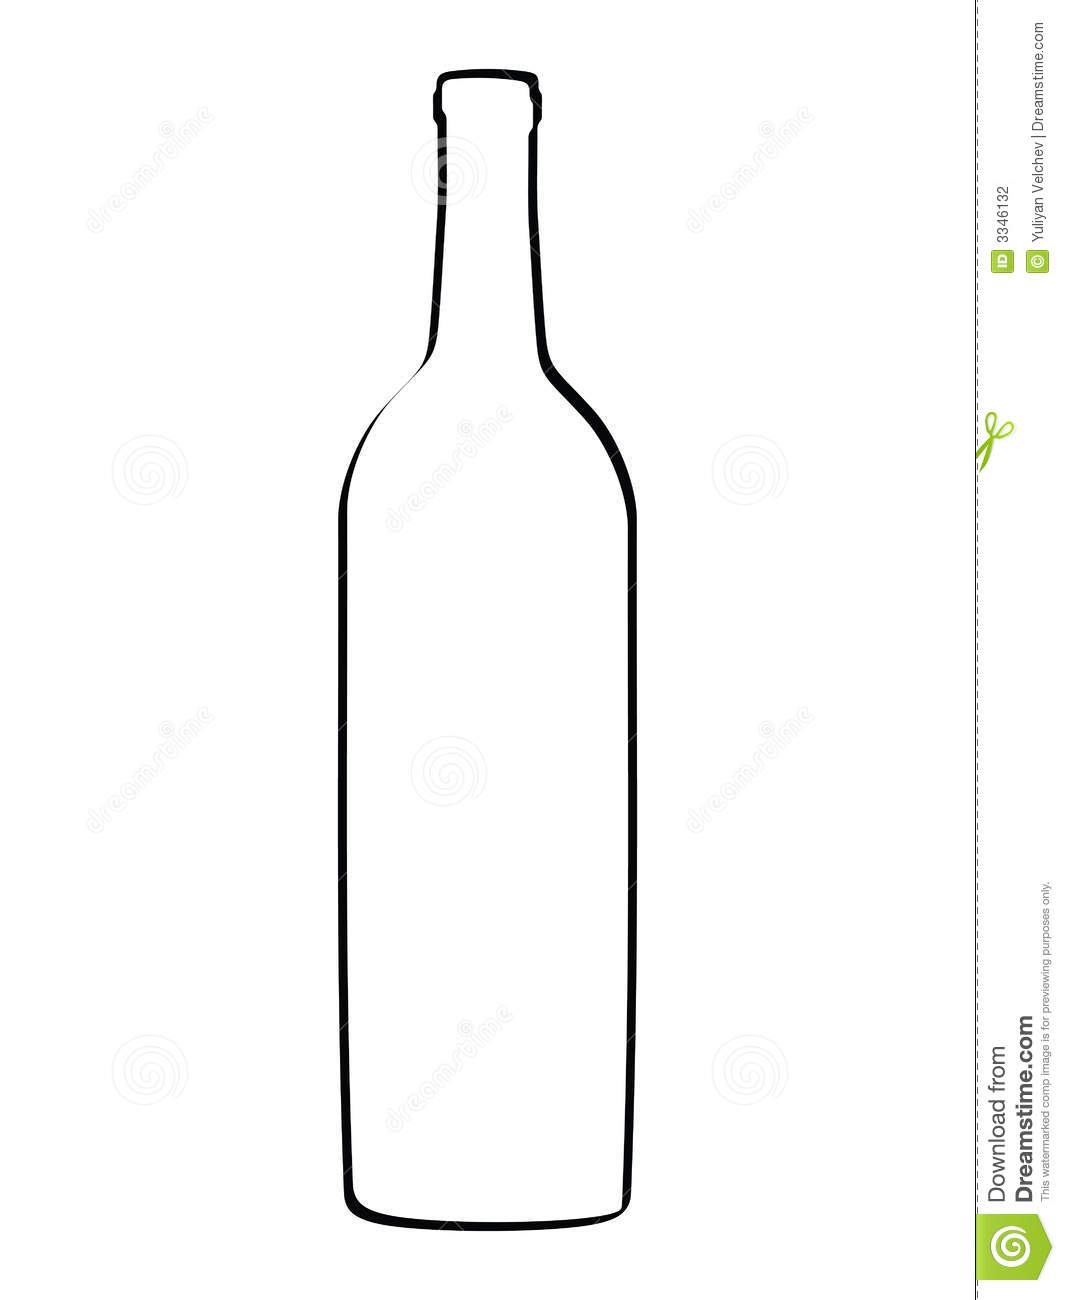 Clipart wine bottles clipart royalty free 36+ Clipart Wine Bottle | ClipartLook clipart royalty free